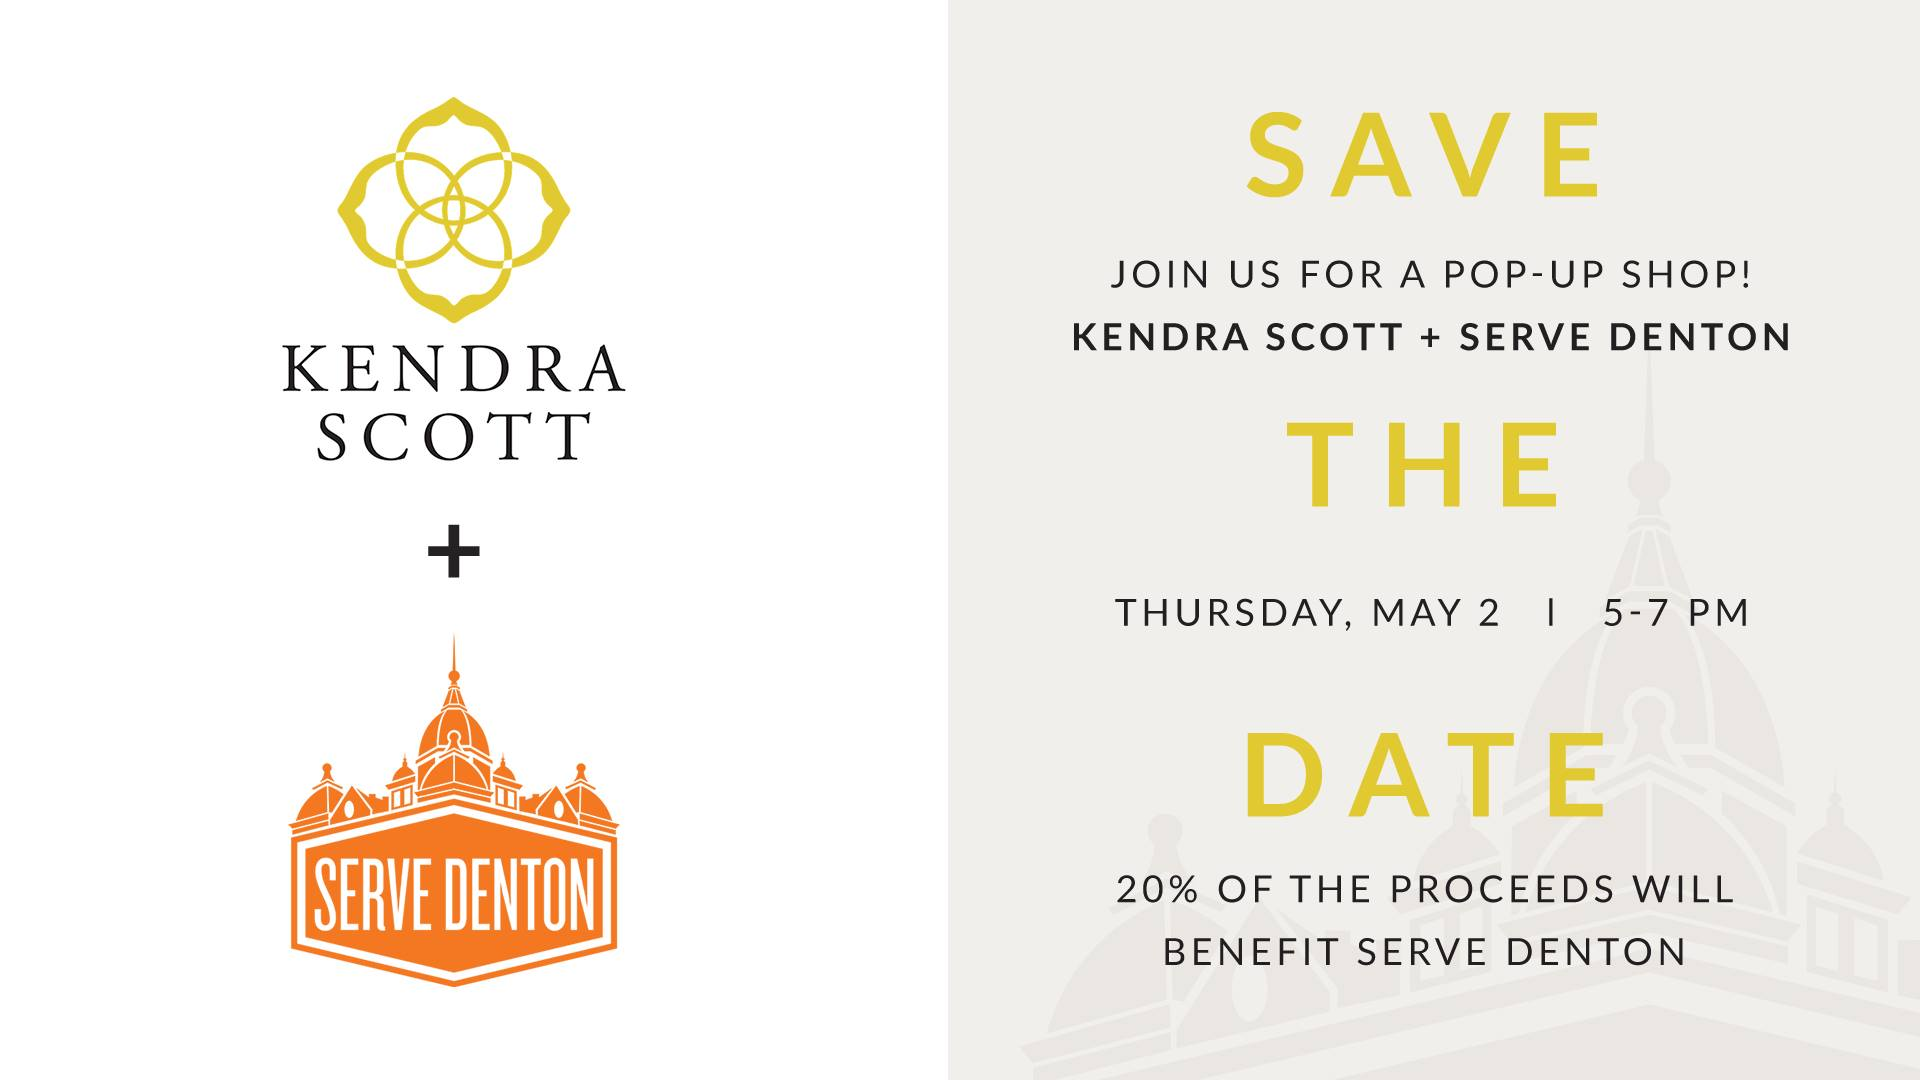 Kendra Scott Serve Denton.jpg